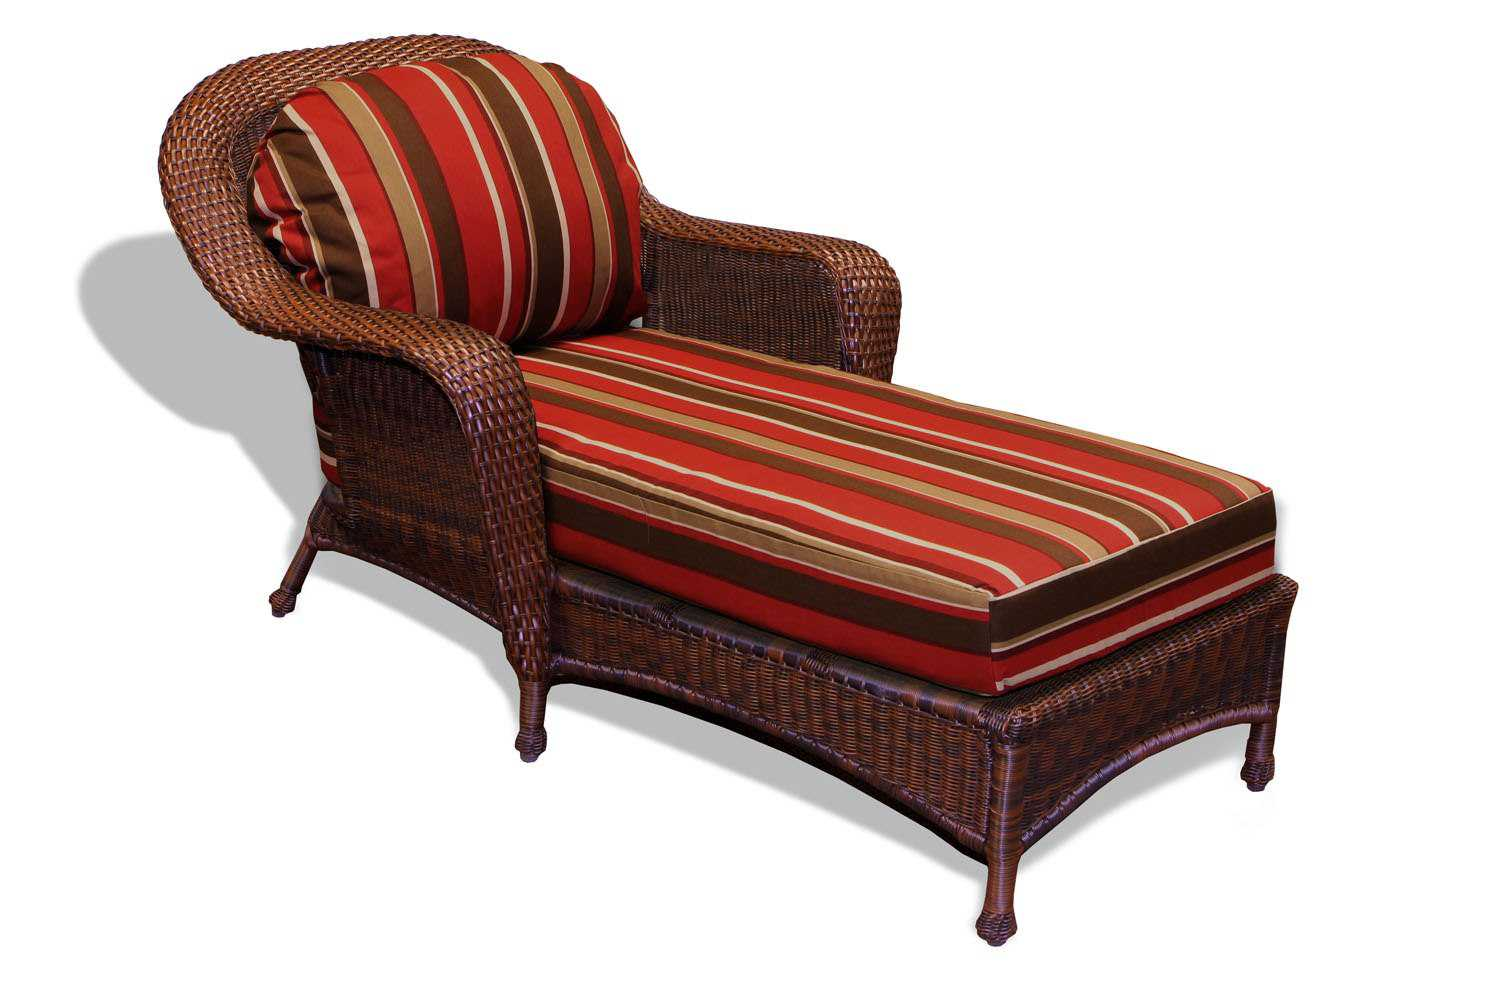 Tortuga Outdoor Sea Pines Wicker Cushion Chaise Lounge